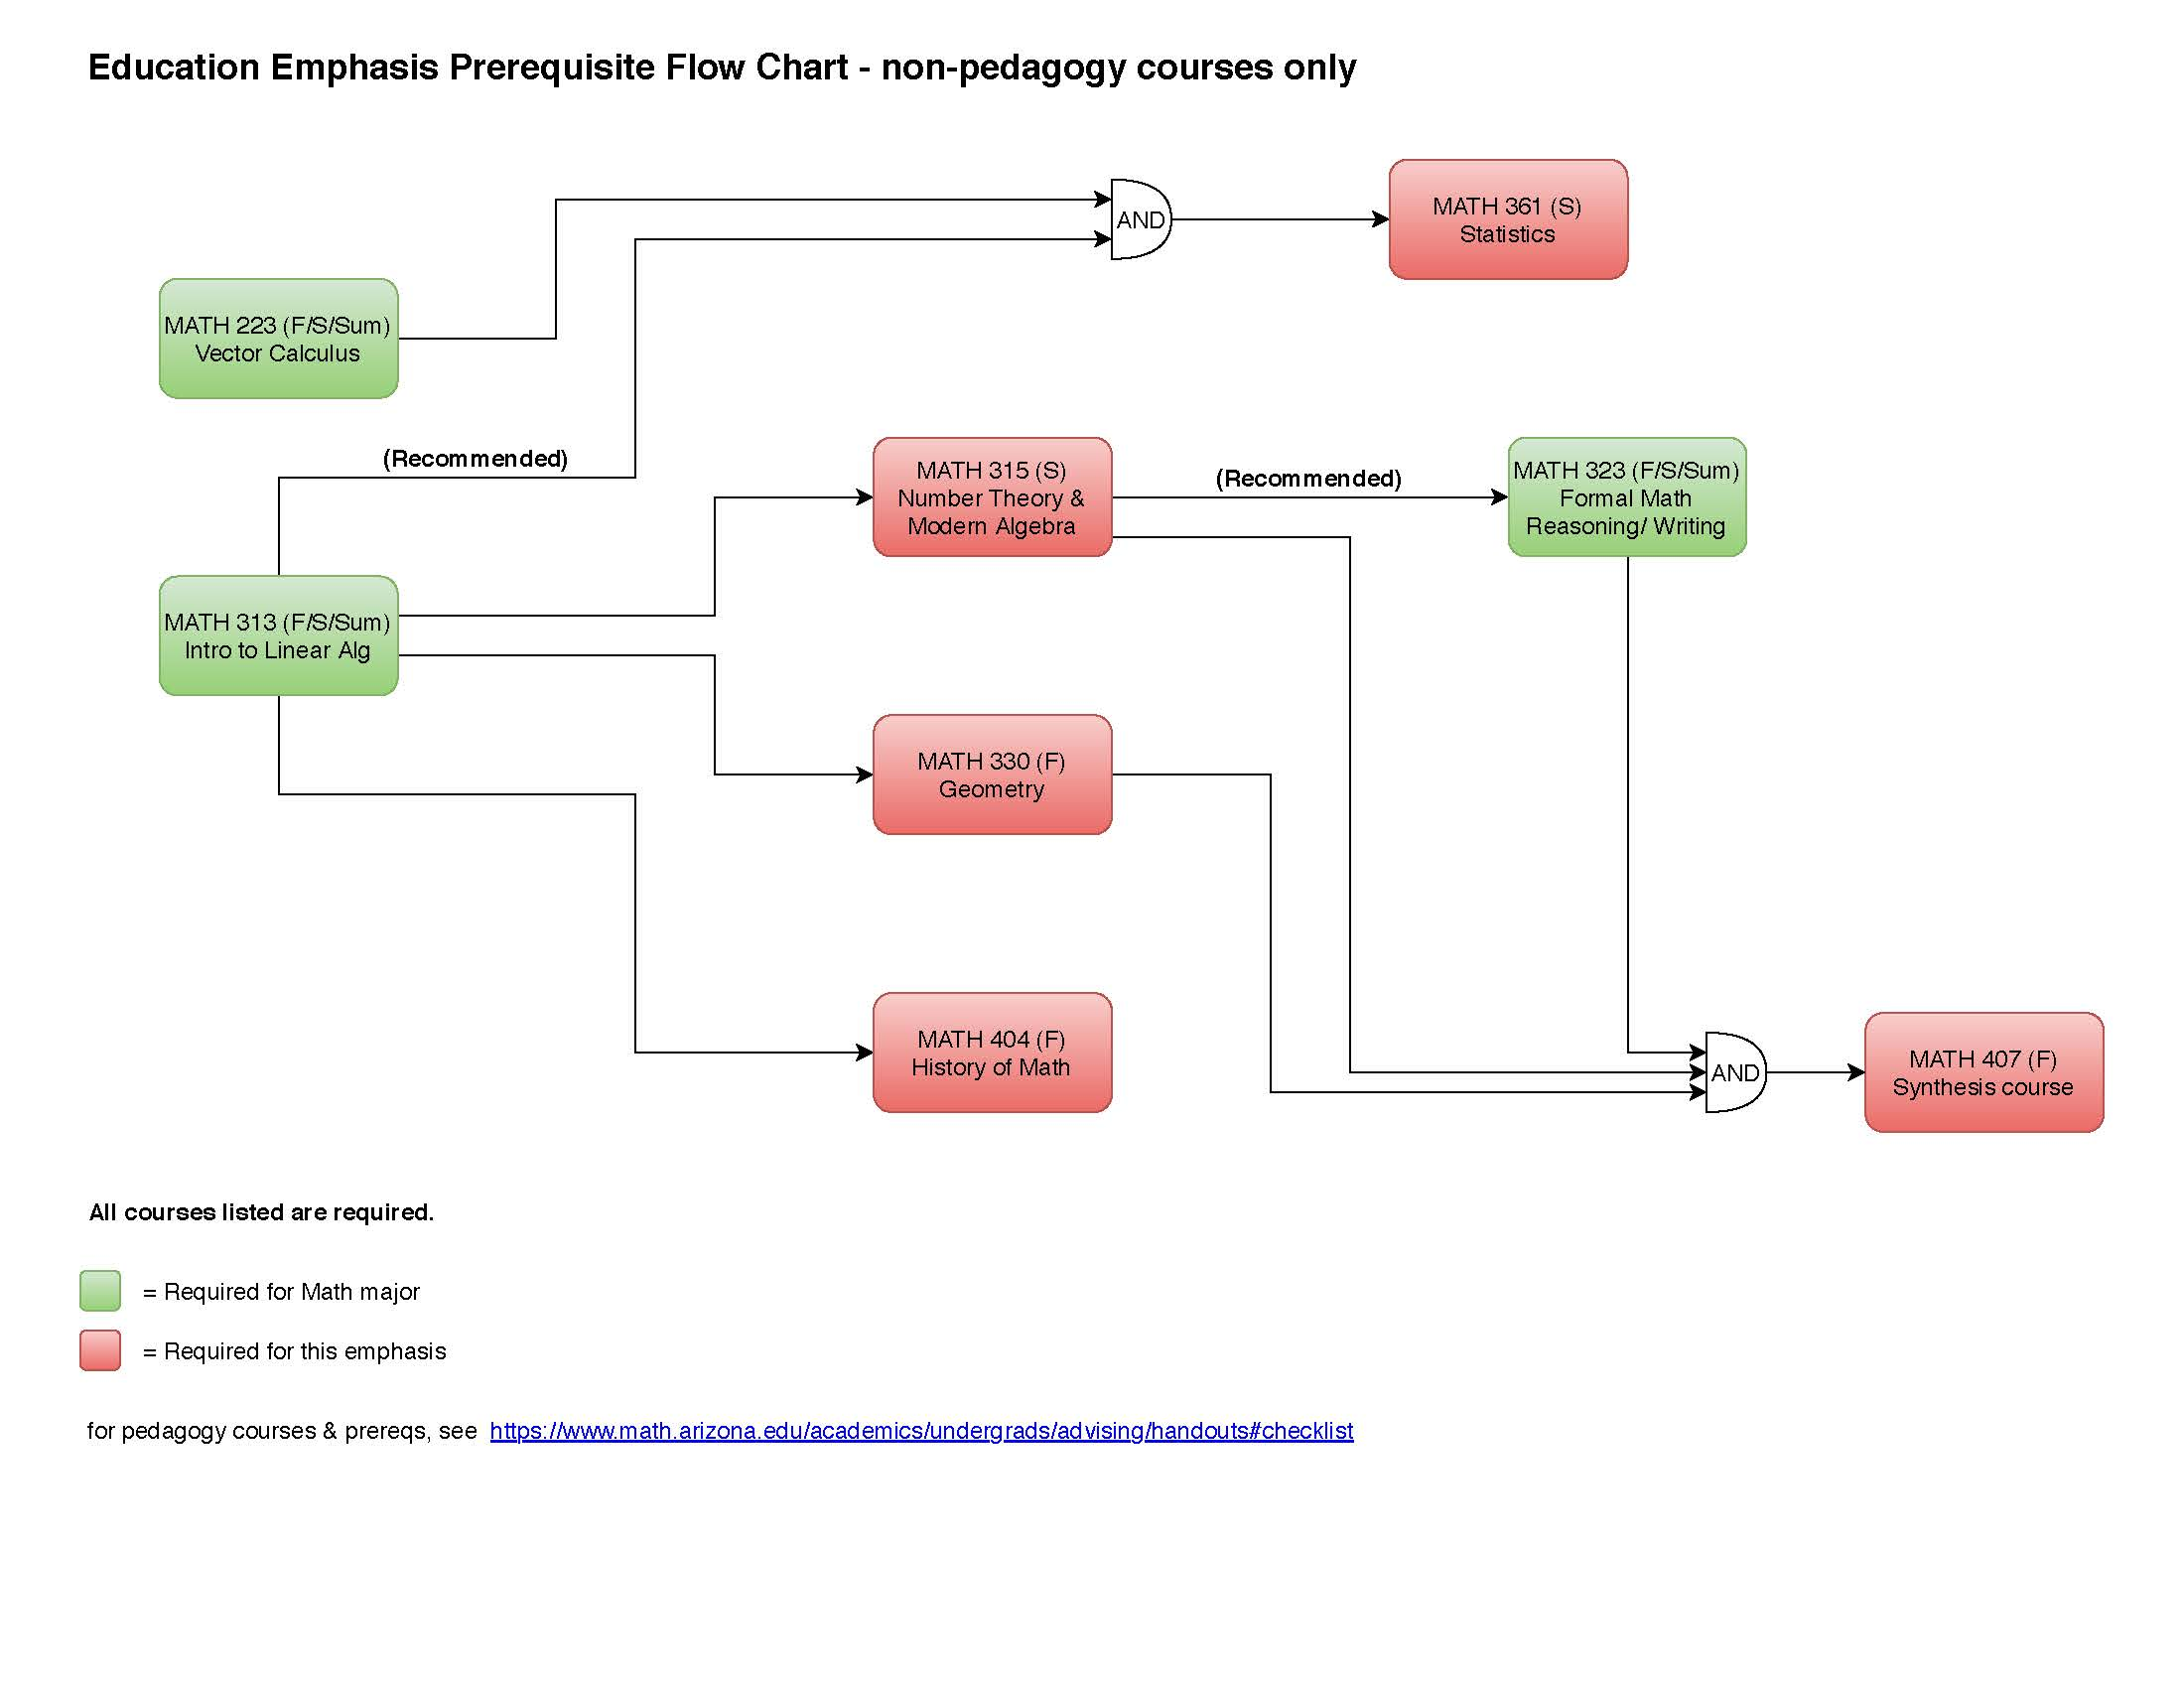 prerequisite flowchart for education emphasis